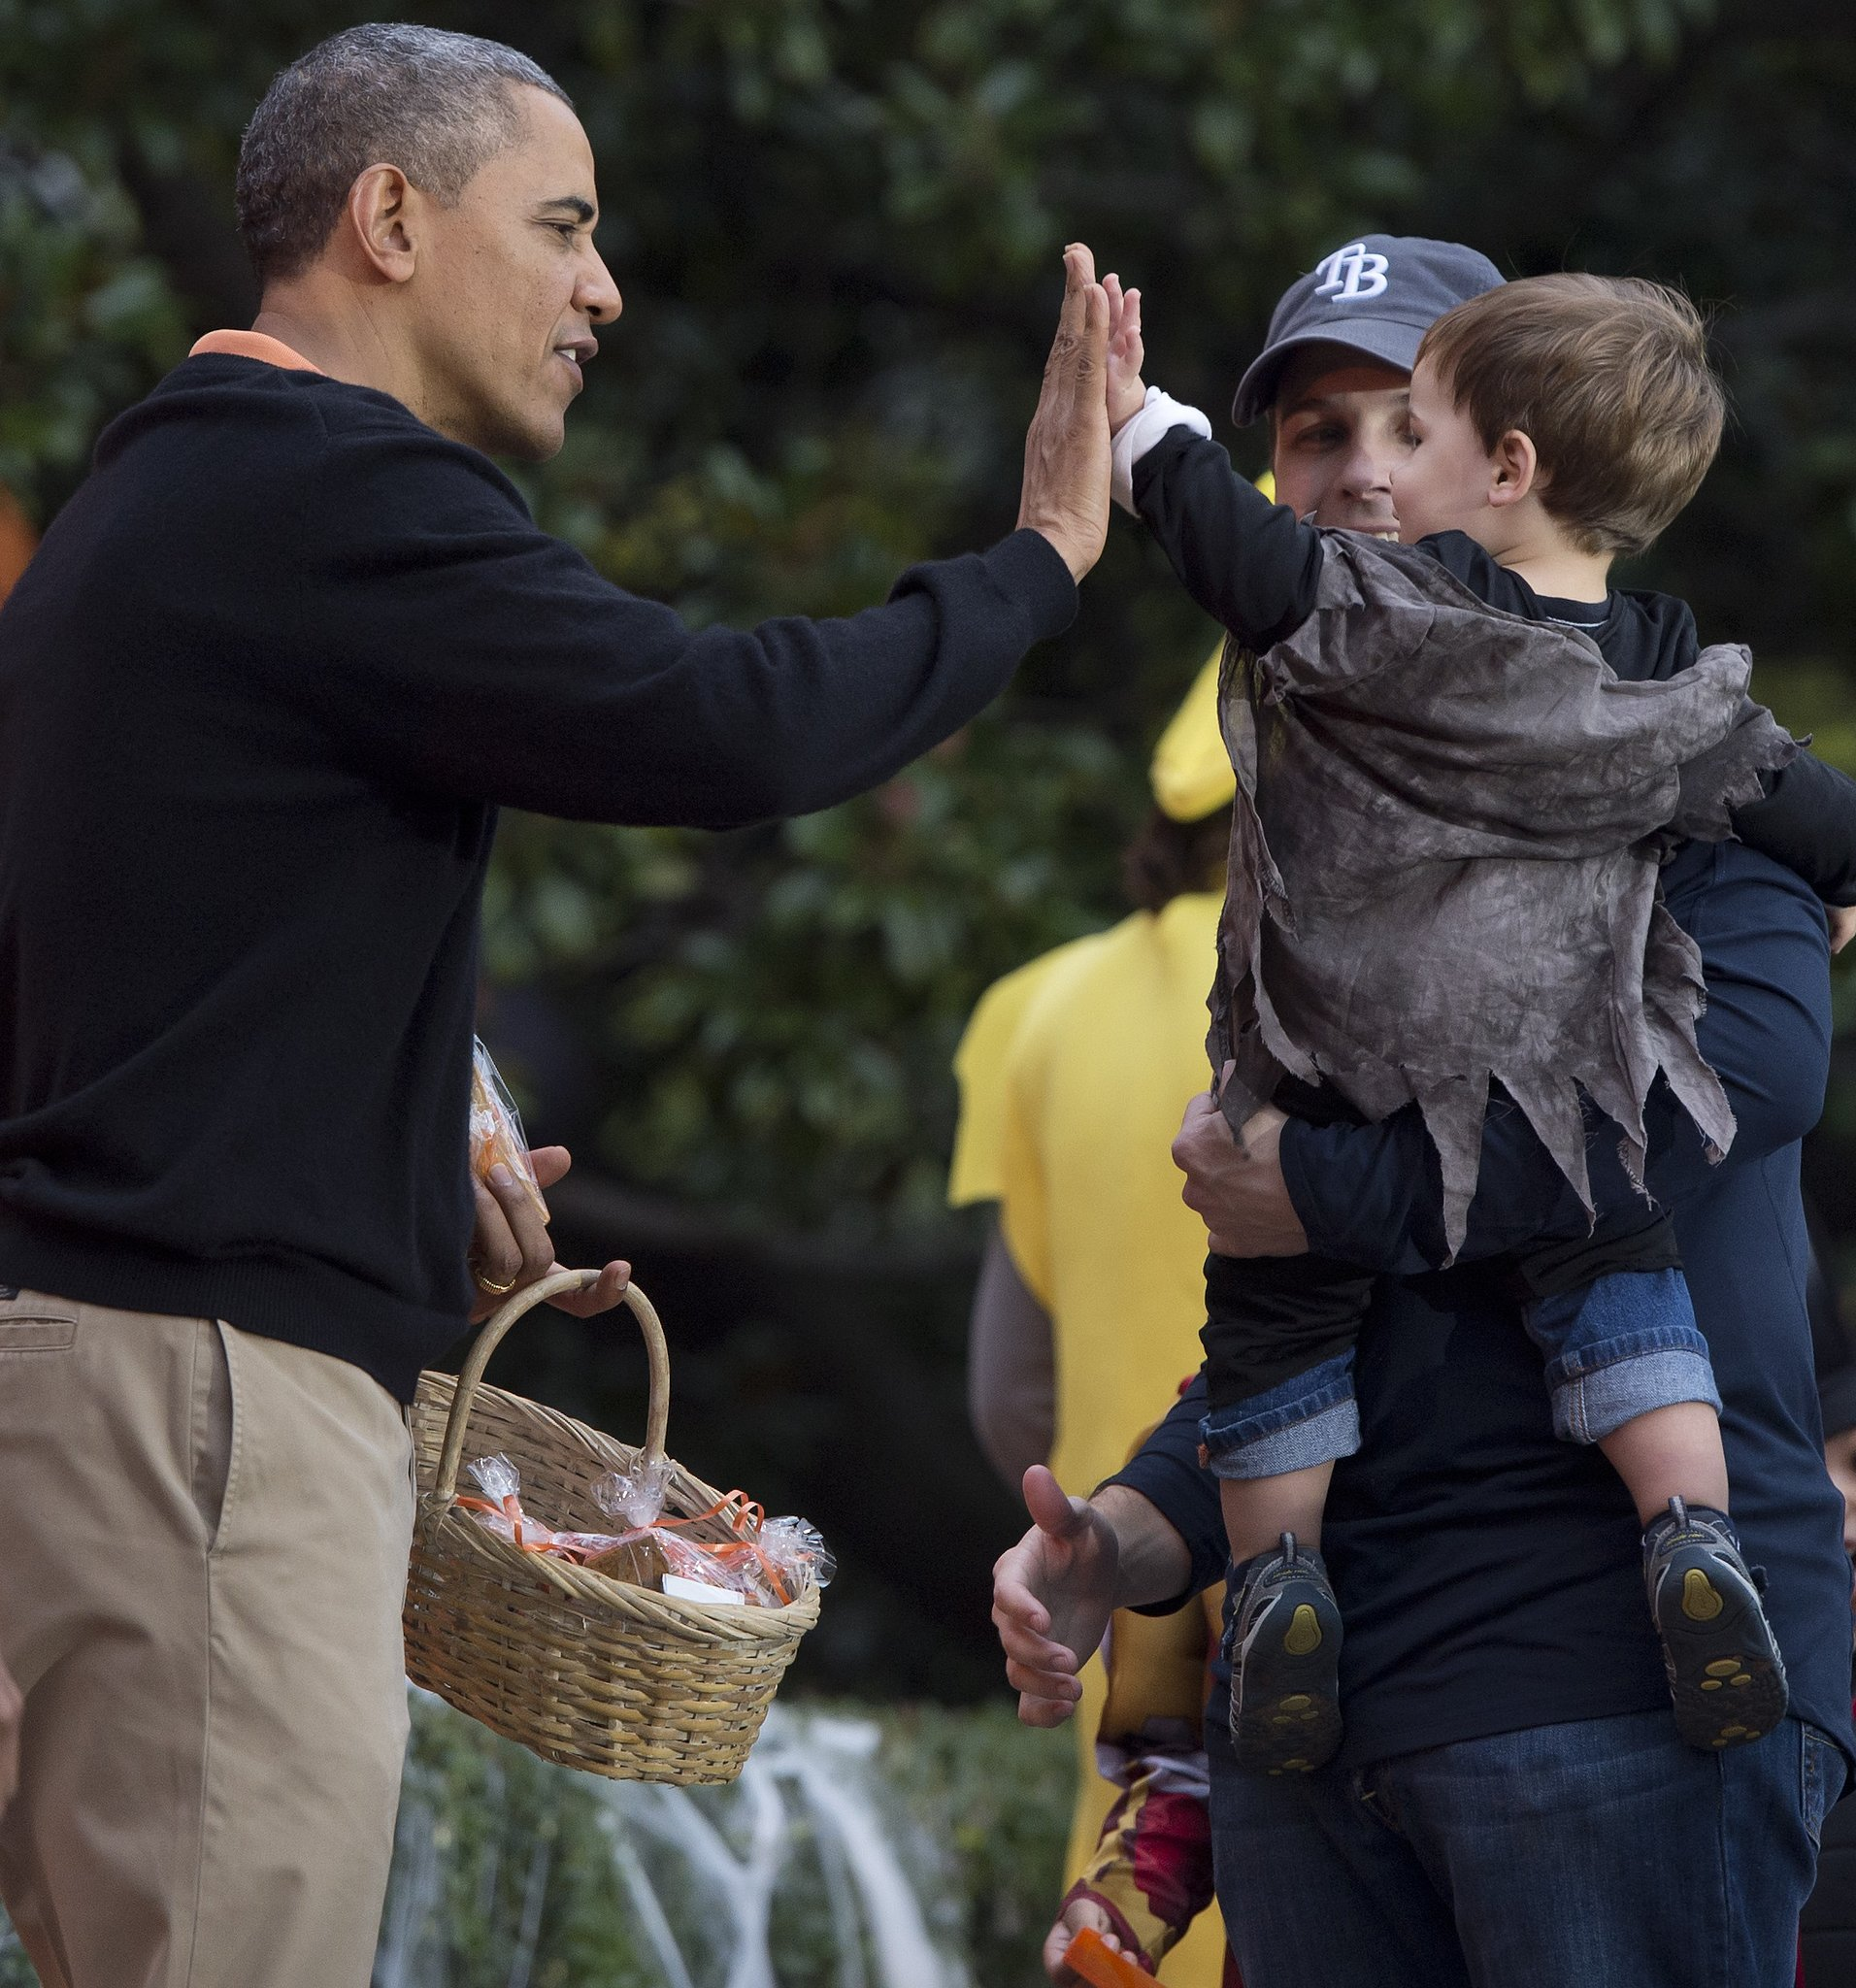 Along with the candy, Mr. President also gave out high fives.